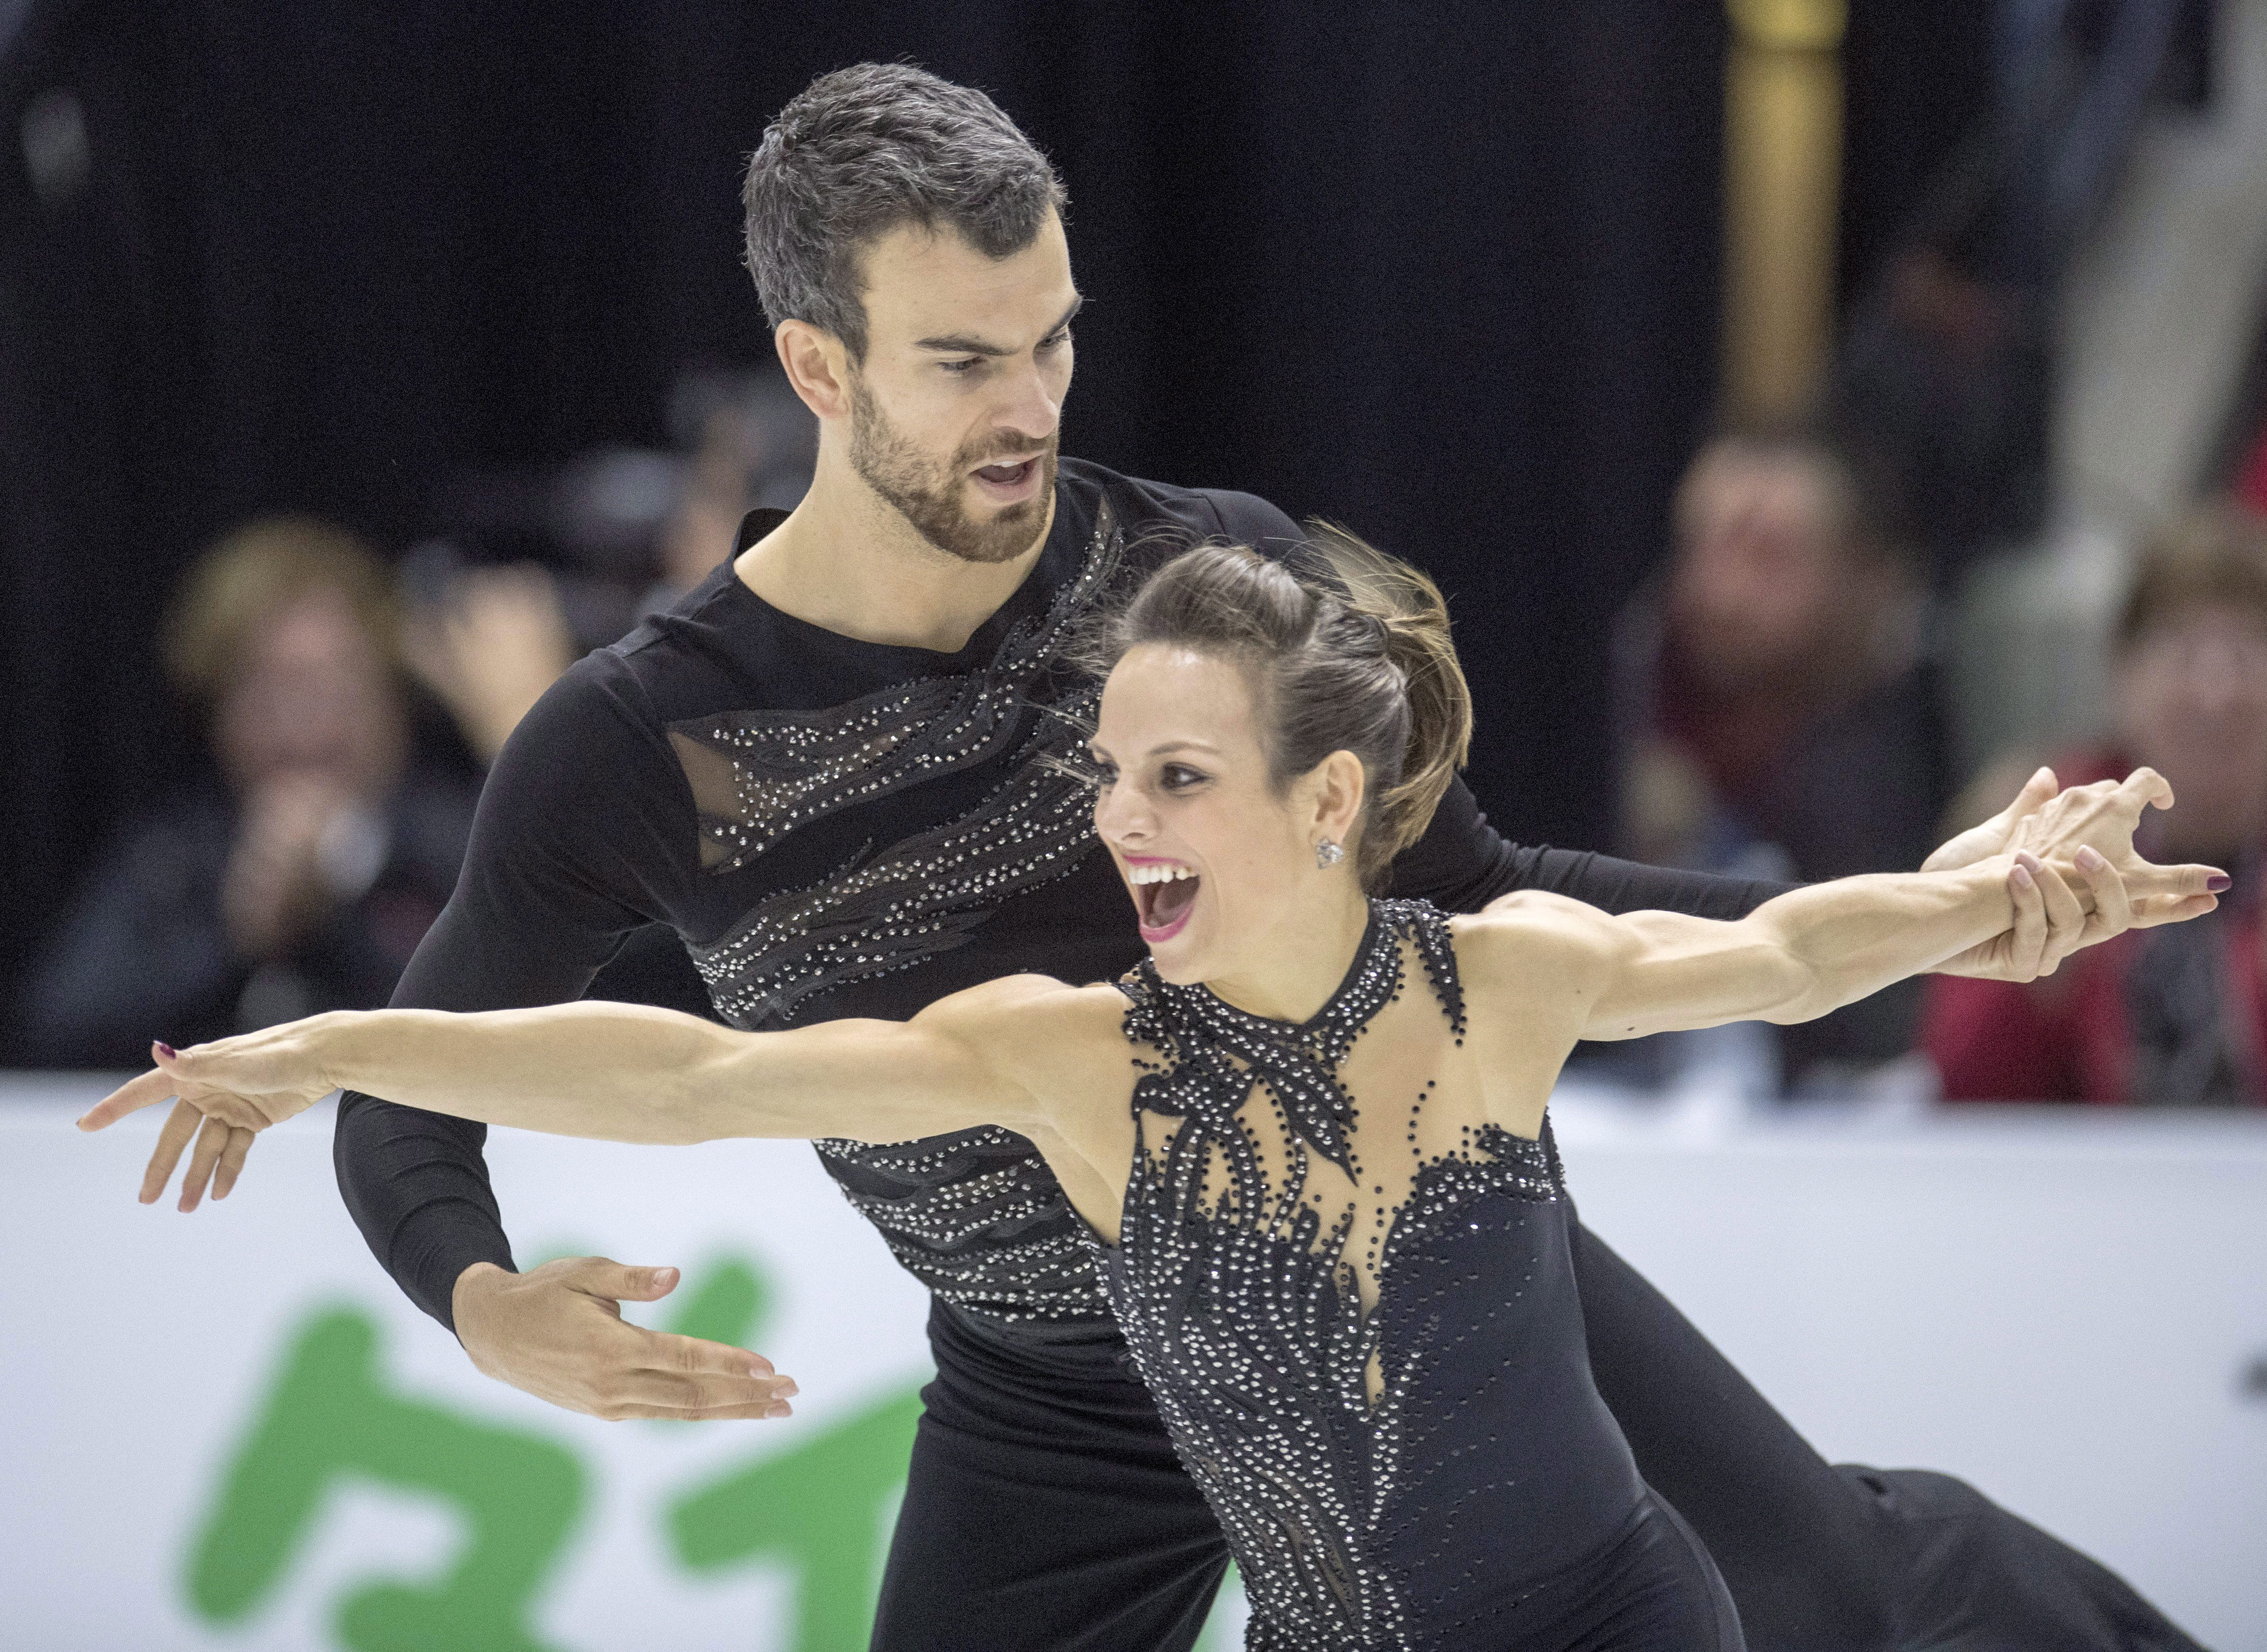 Canada's Meagan Duhamel and Eric Radford perform in the pairs short program at Skate Canada International Friday, October 28, 2016 in Mississauga, Ont. THE CANADIAN PRESS/Frank Gunn